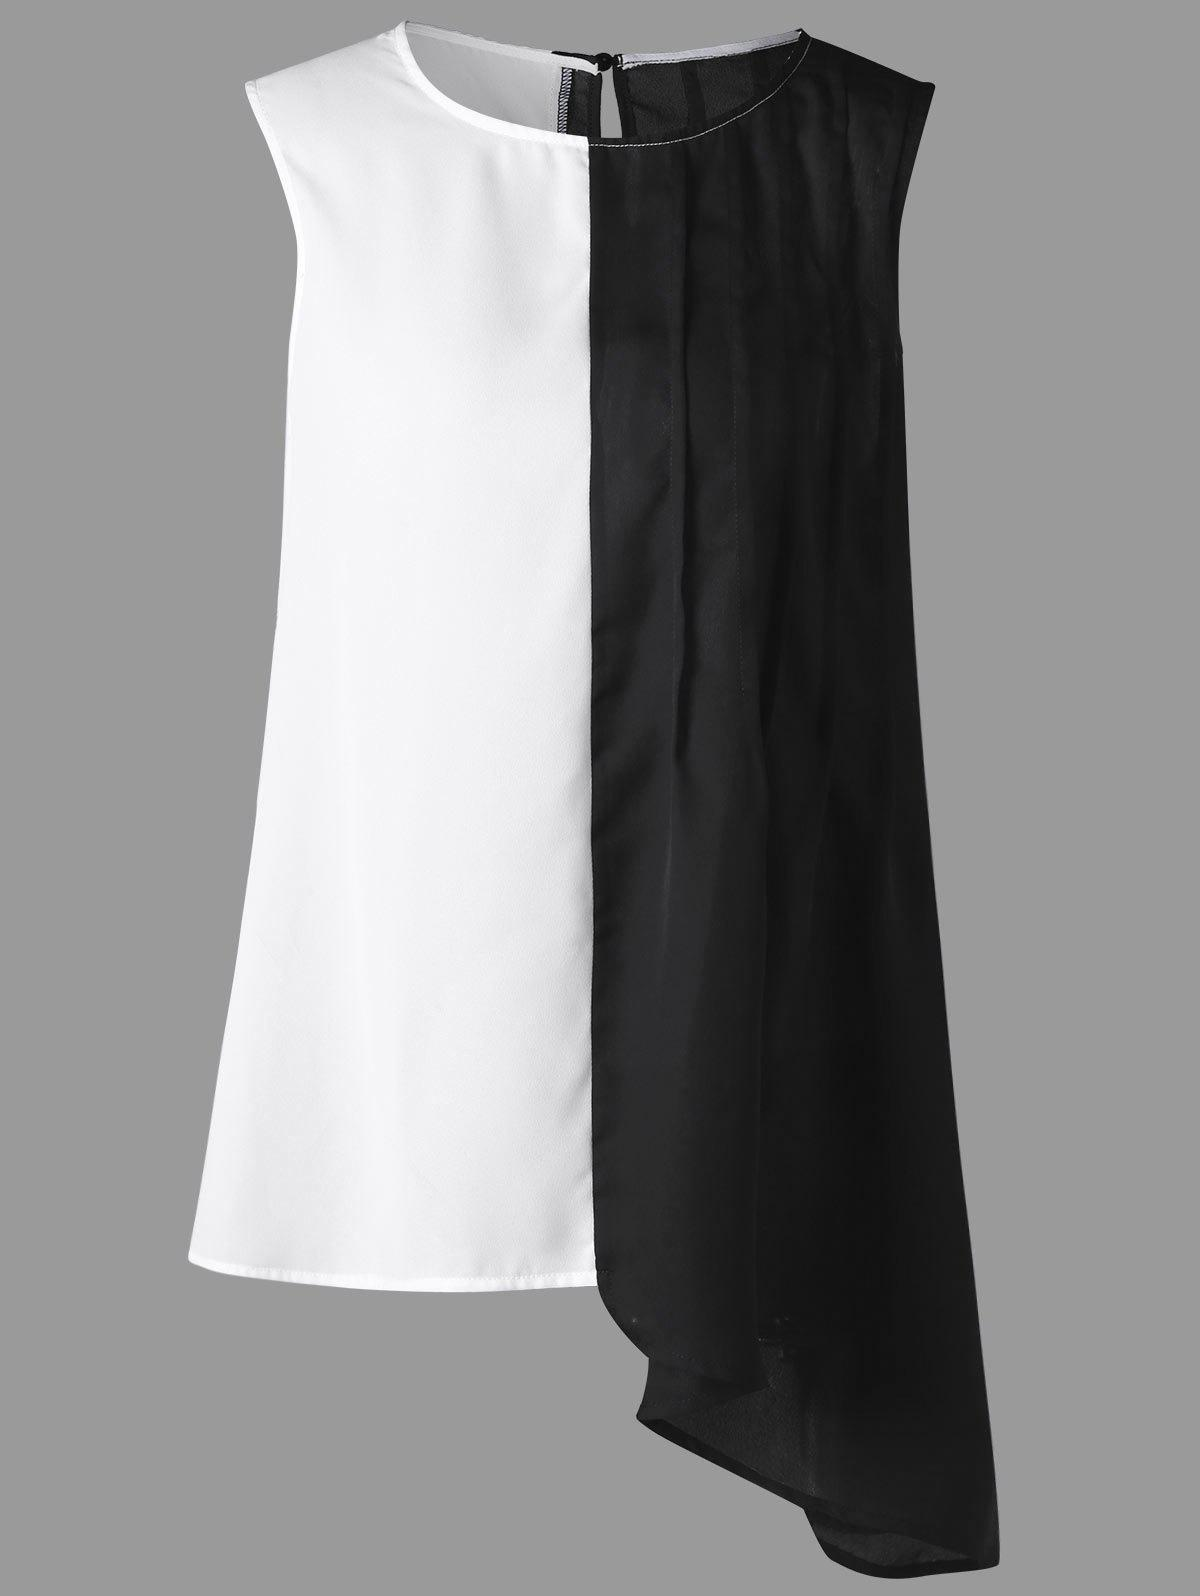 Plus Size Sleeveless Two Tone Asymmetrical BlouseWOMEN<br><br>Size: 4XL; Color: WHITE AND BLACK; Material: Polyester; Shirt Length: Regular; Sleeve Length: Sleeveless; Collar: Round Neck; Style: Fashion; Season: Summer; Pattern Type: Solid; Weight: 0.1900kg; Package Contents: 1 x Blouse;